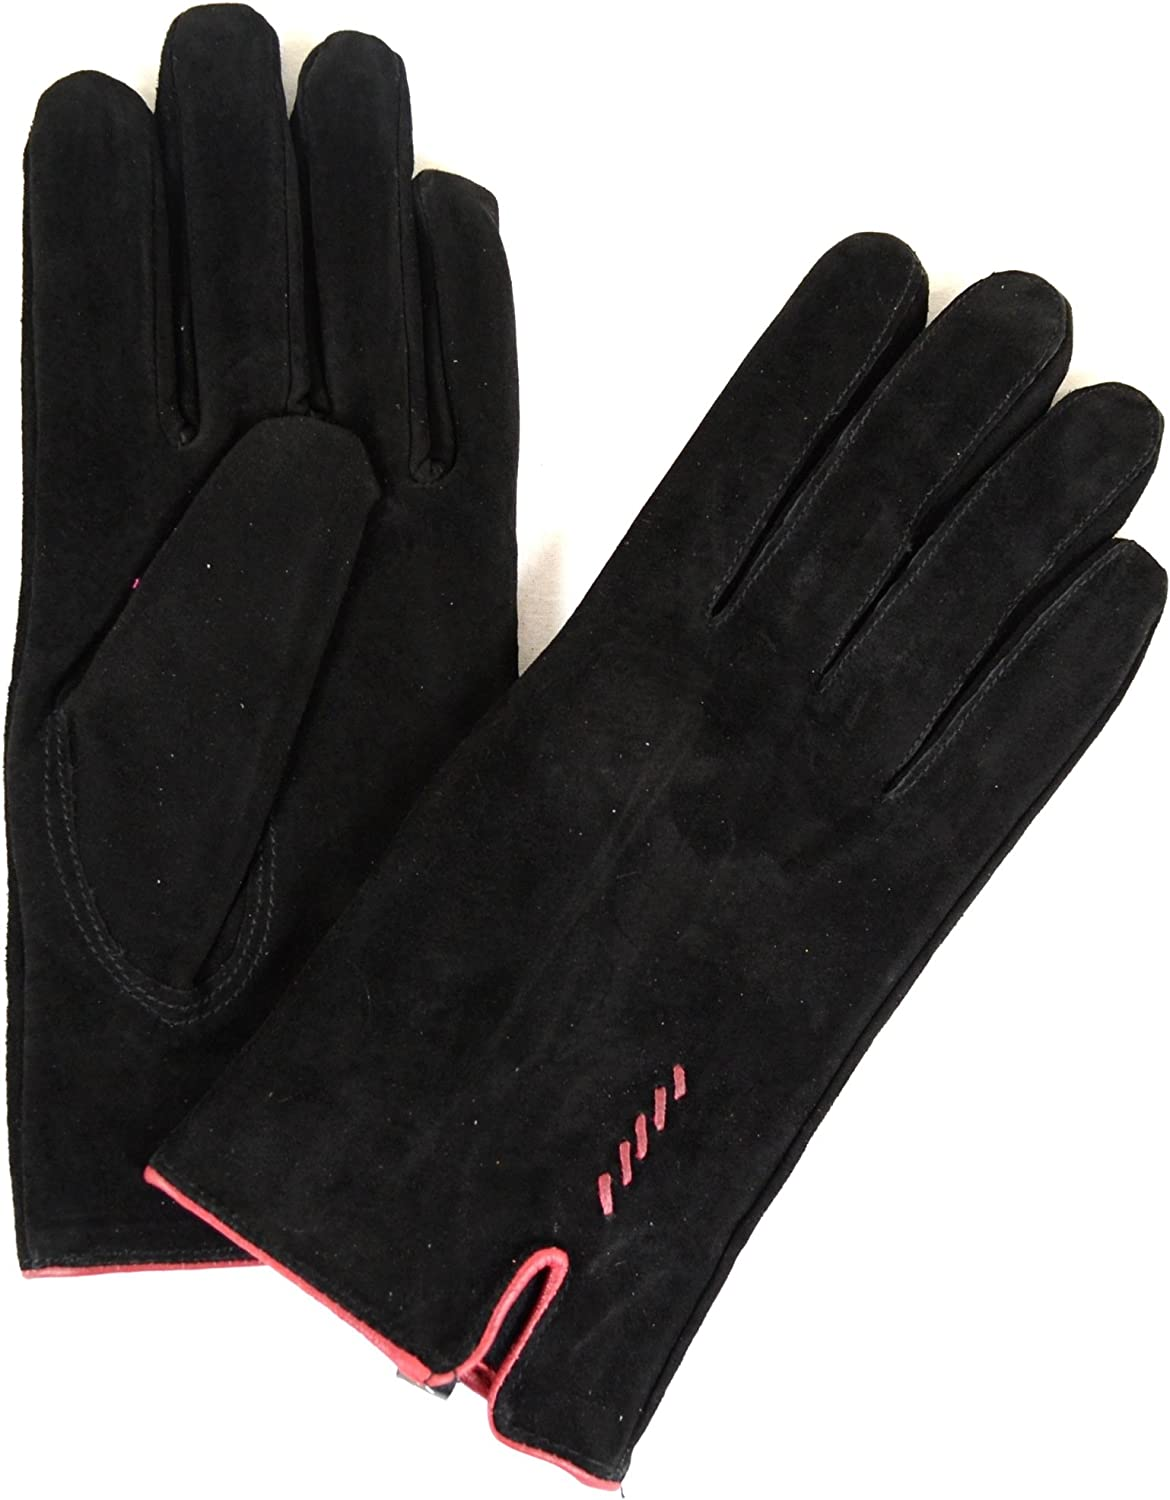 Ladies Suede Gloves with Fleece Lining and Stitch Design